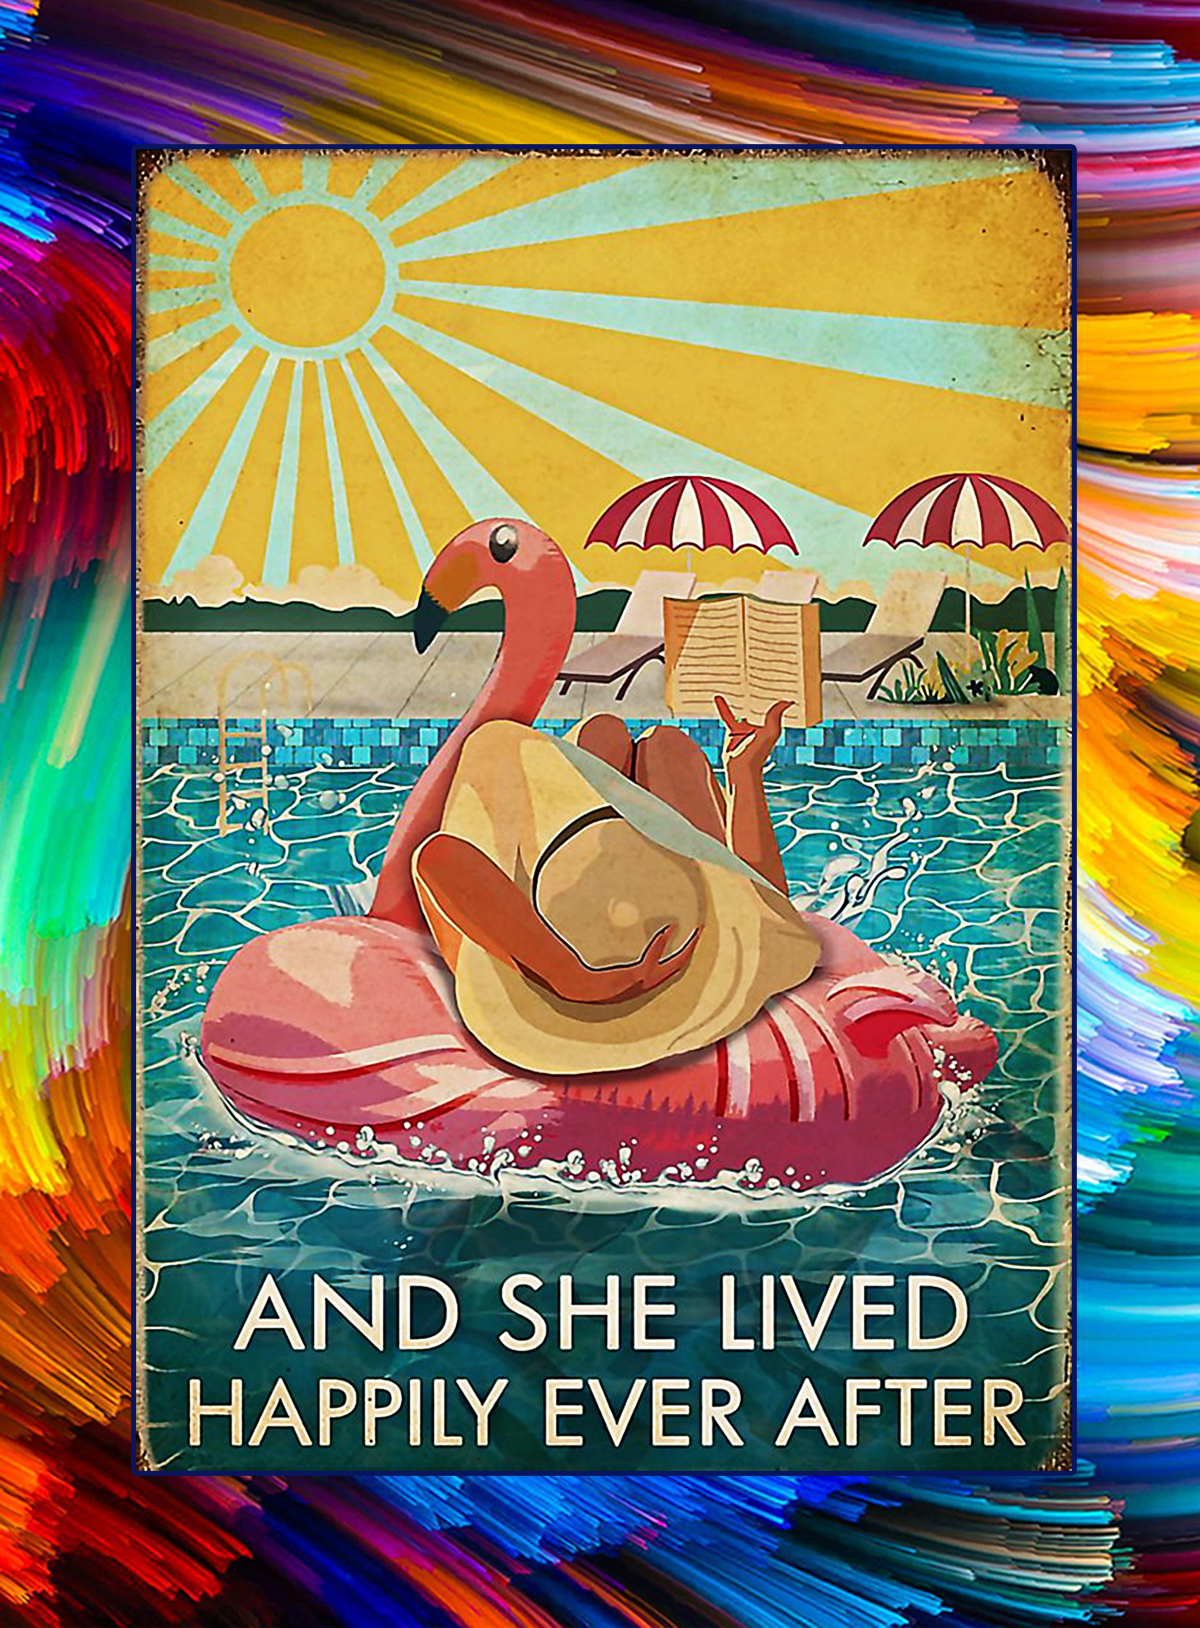 Flamingo and she lived happily ever after poster - A1